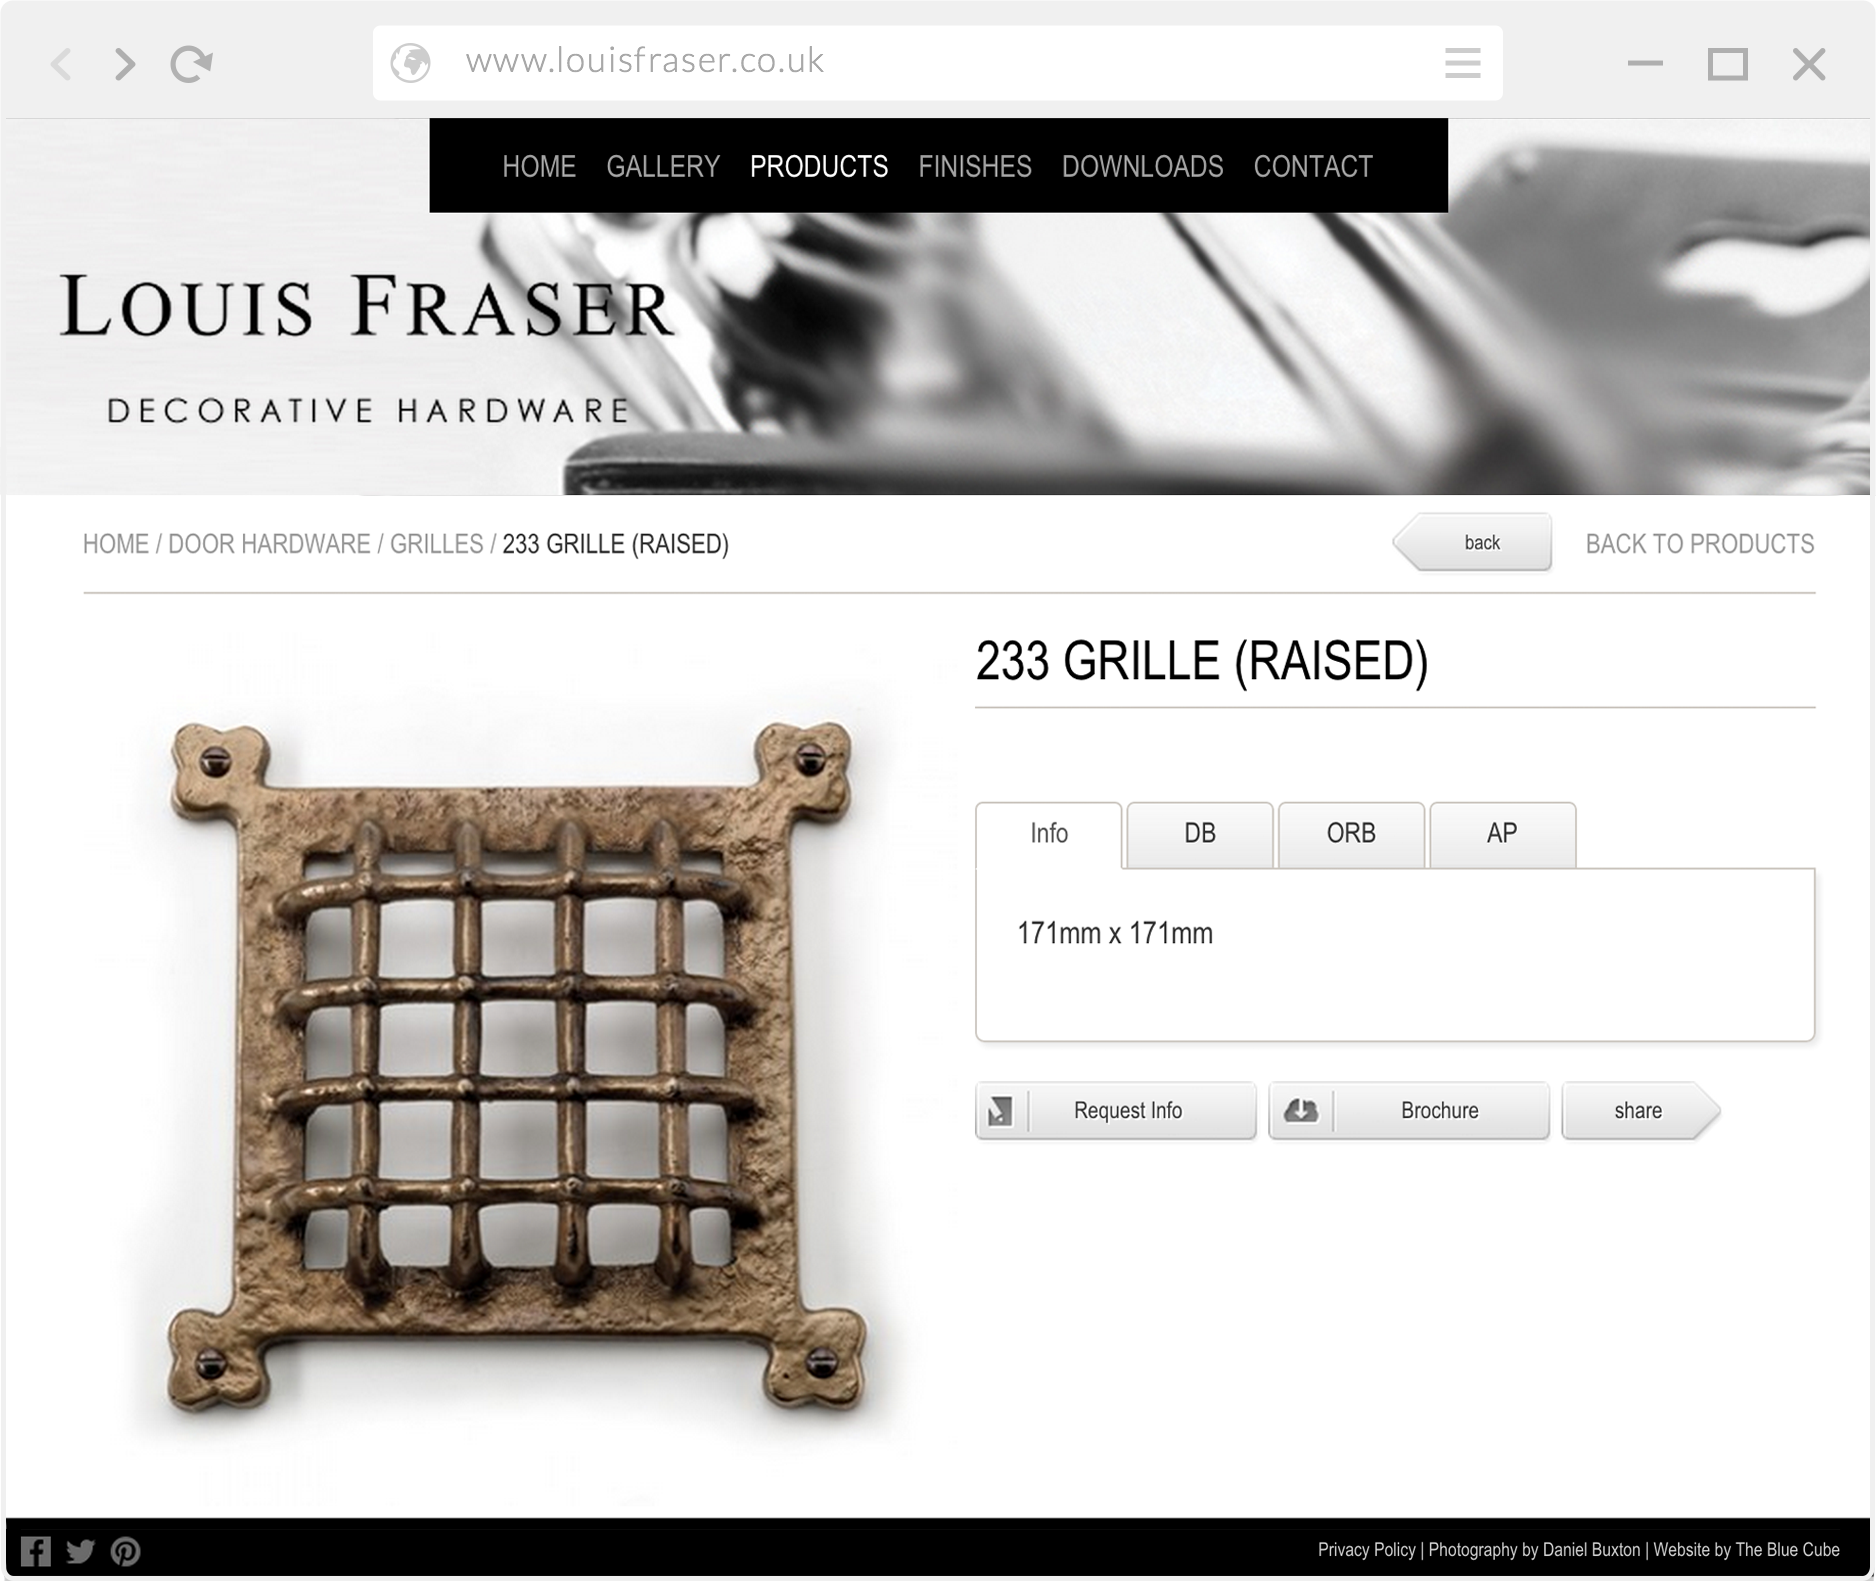 Louis Fraser product